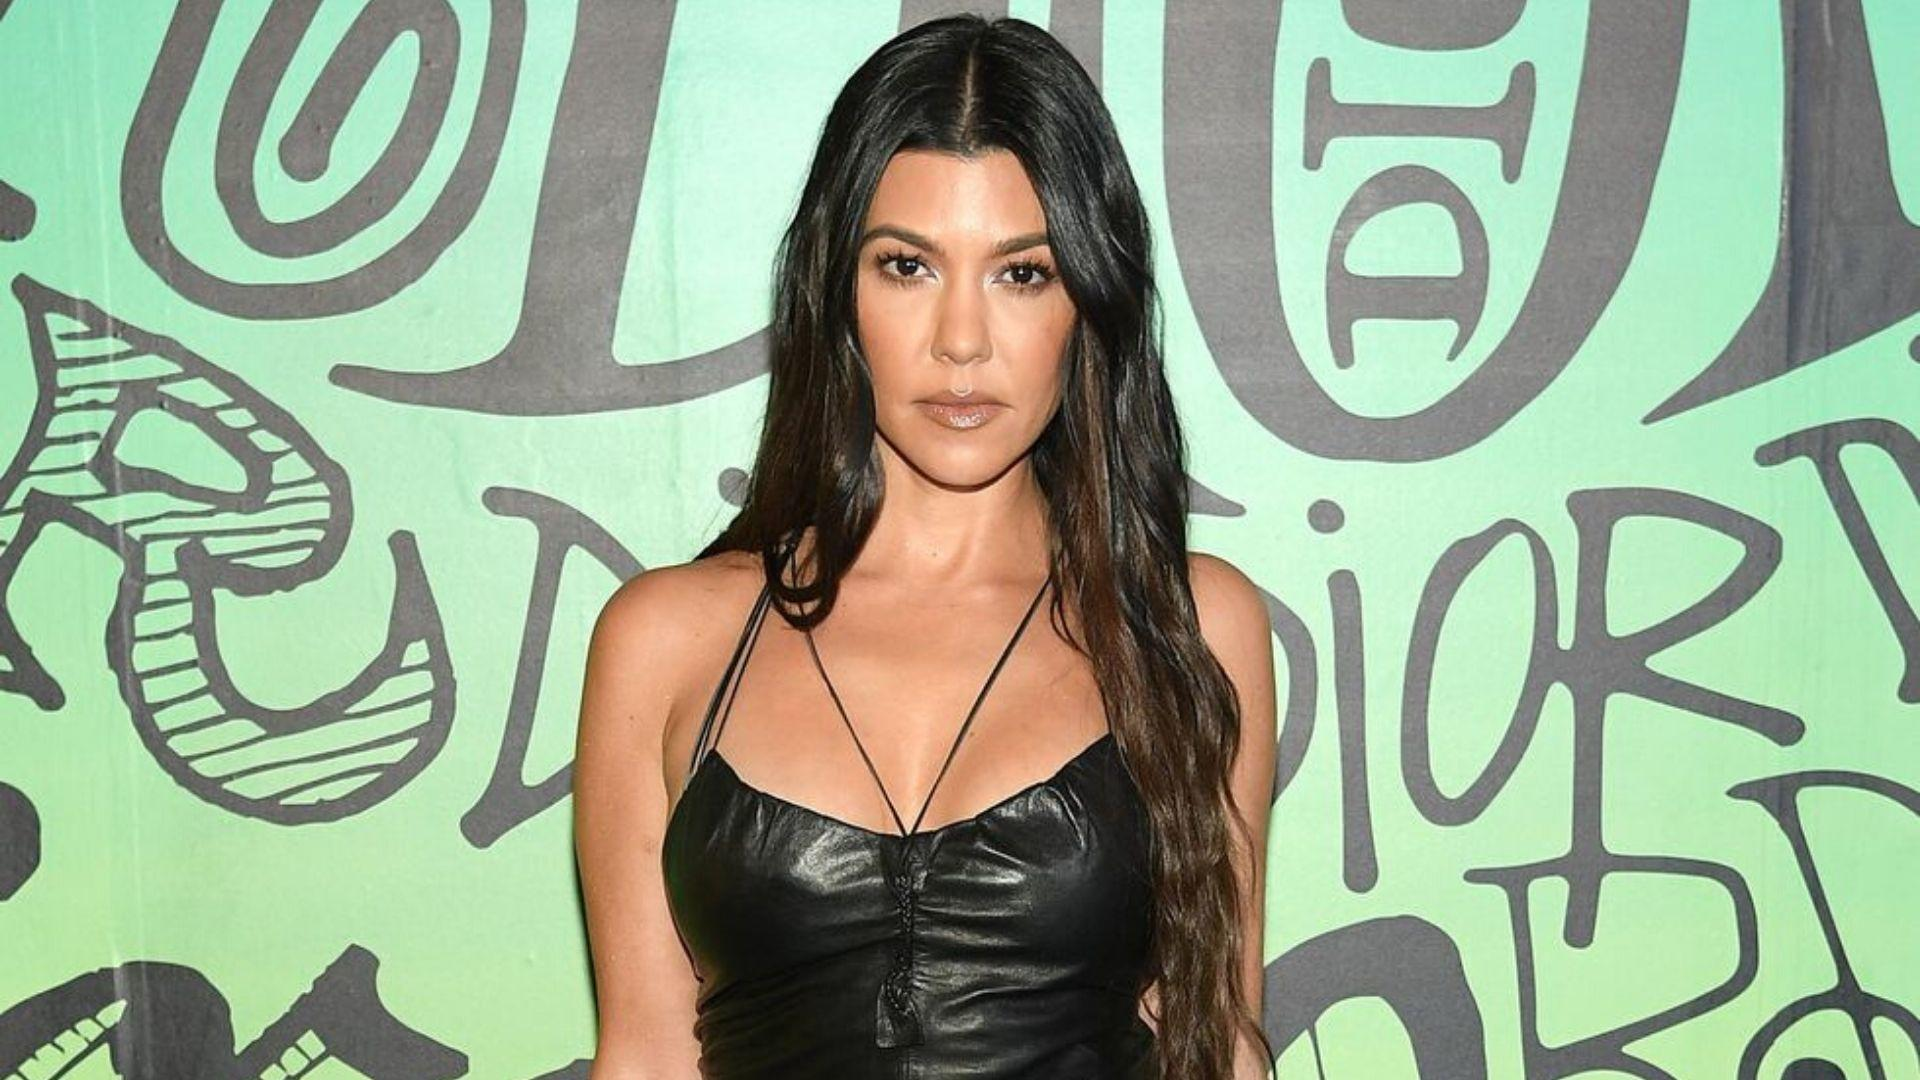 Kourtney Kardashian Responds To Backlash Over The Christmas Present She Bought For Her Kids